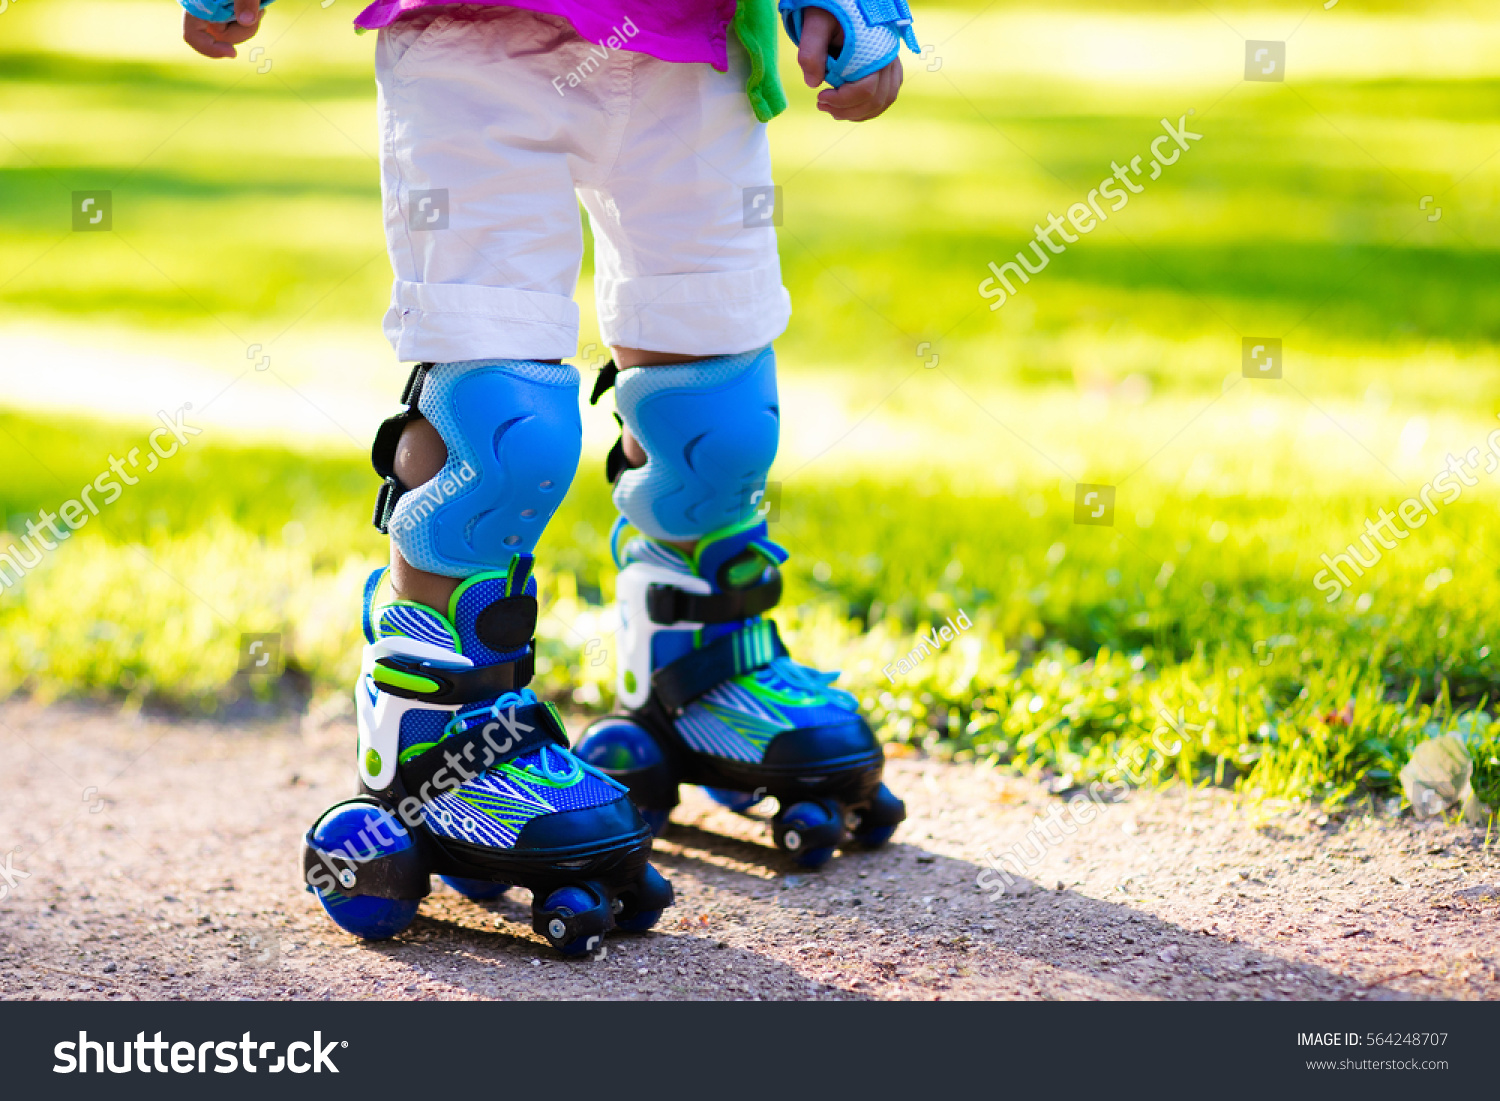 Learn to skate toddler